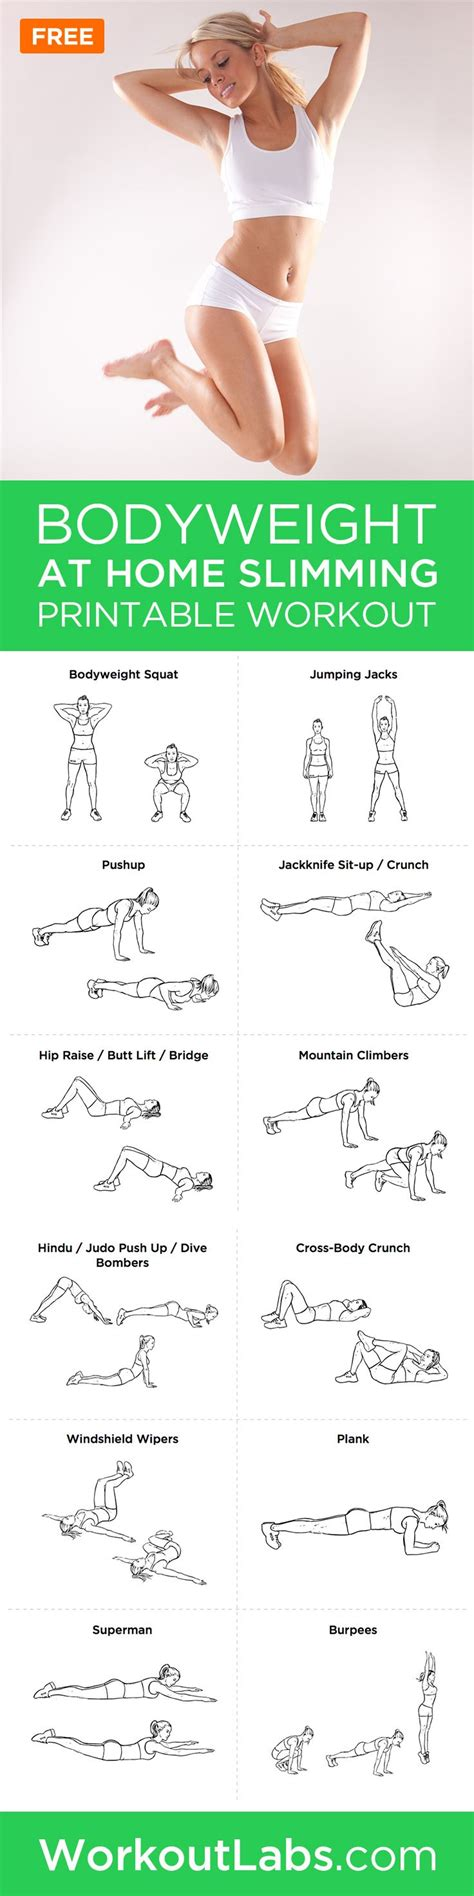 bodyweight at home slimming workout fitness